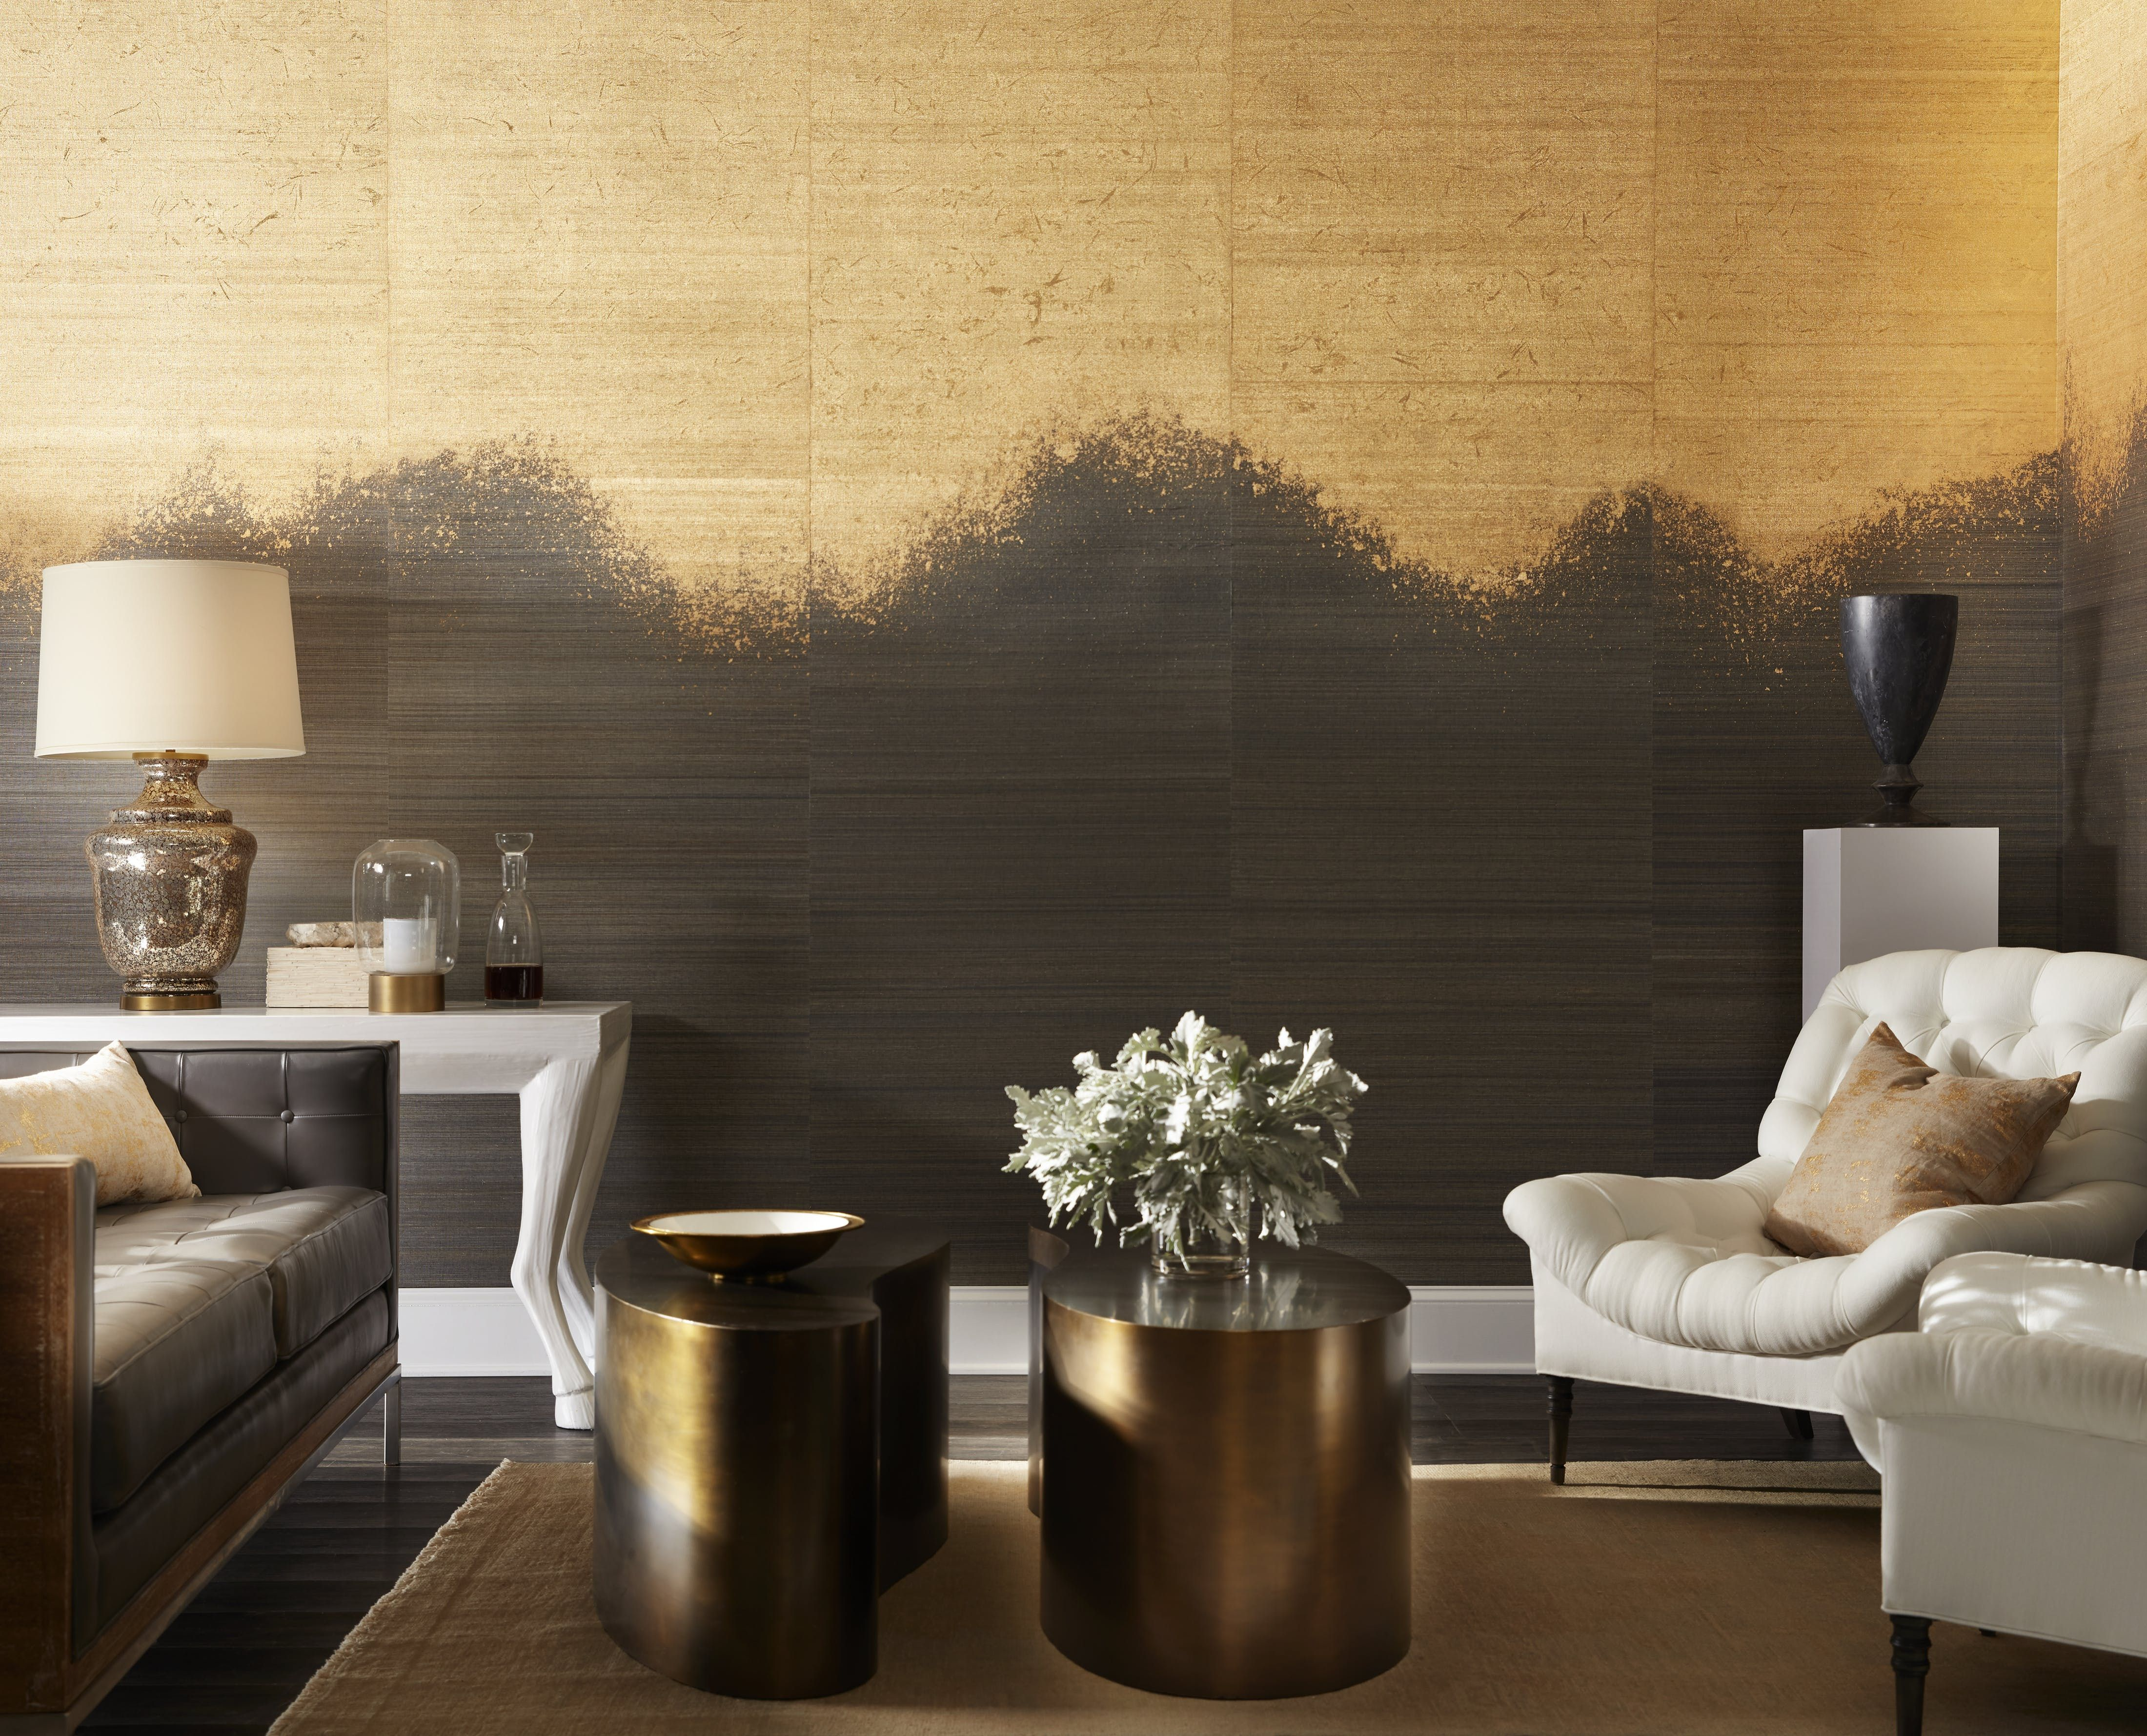 We are swooning over this Metallic Ombré wallcovering